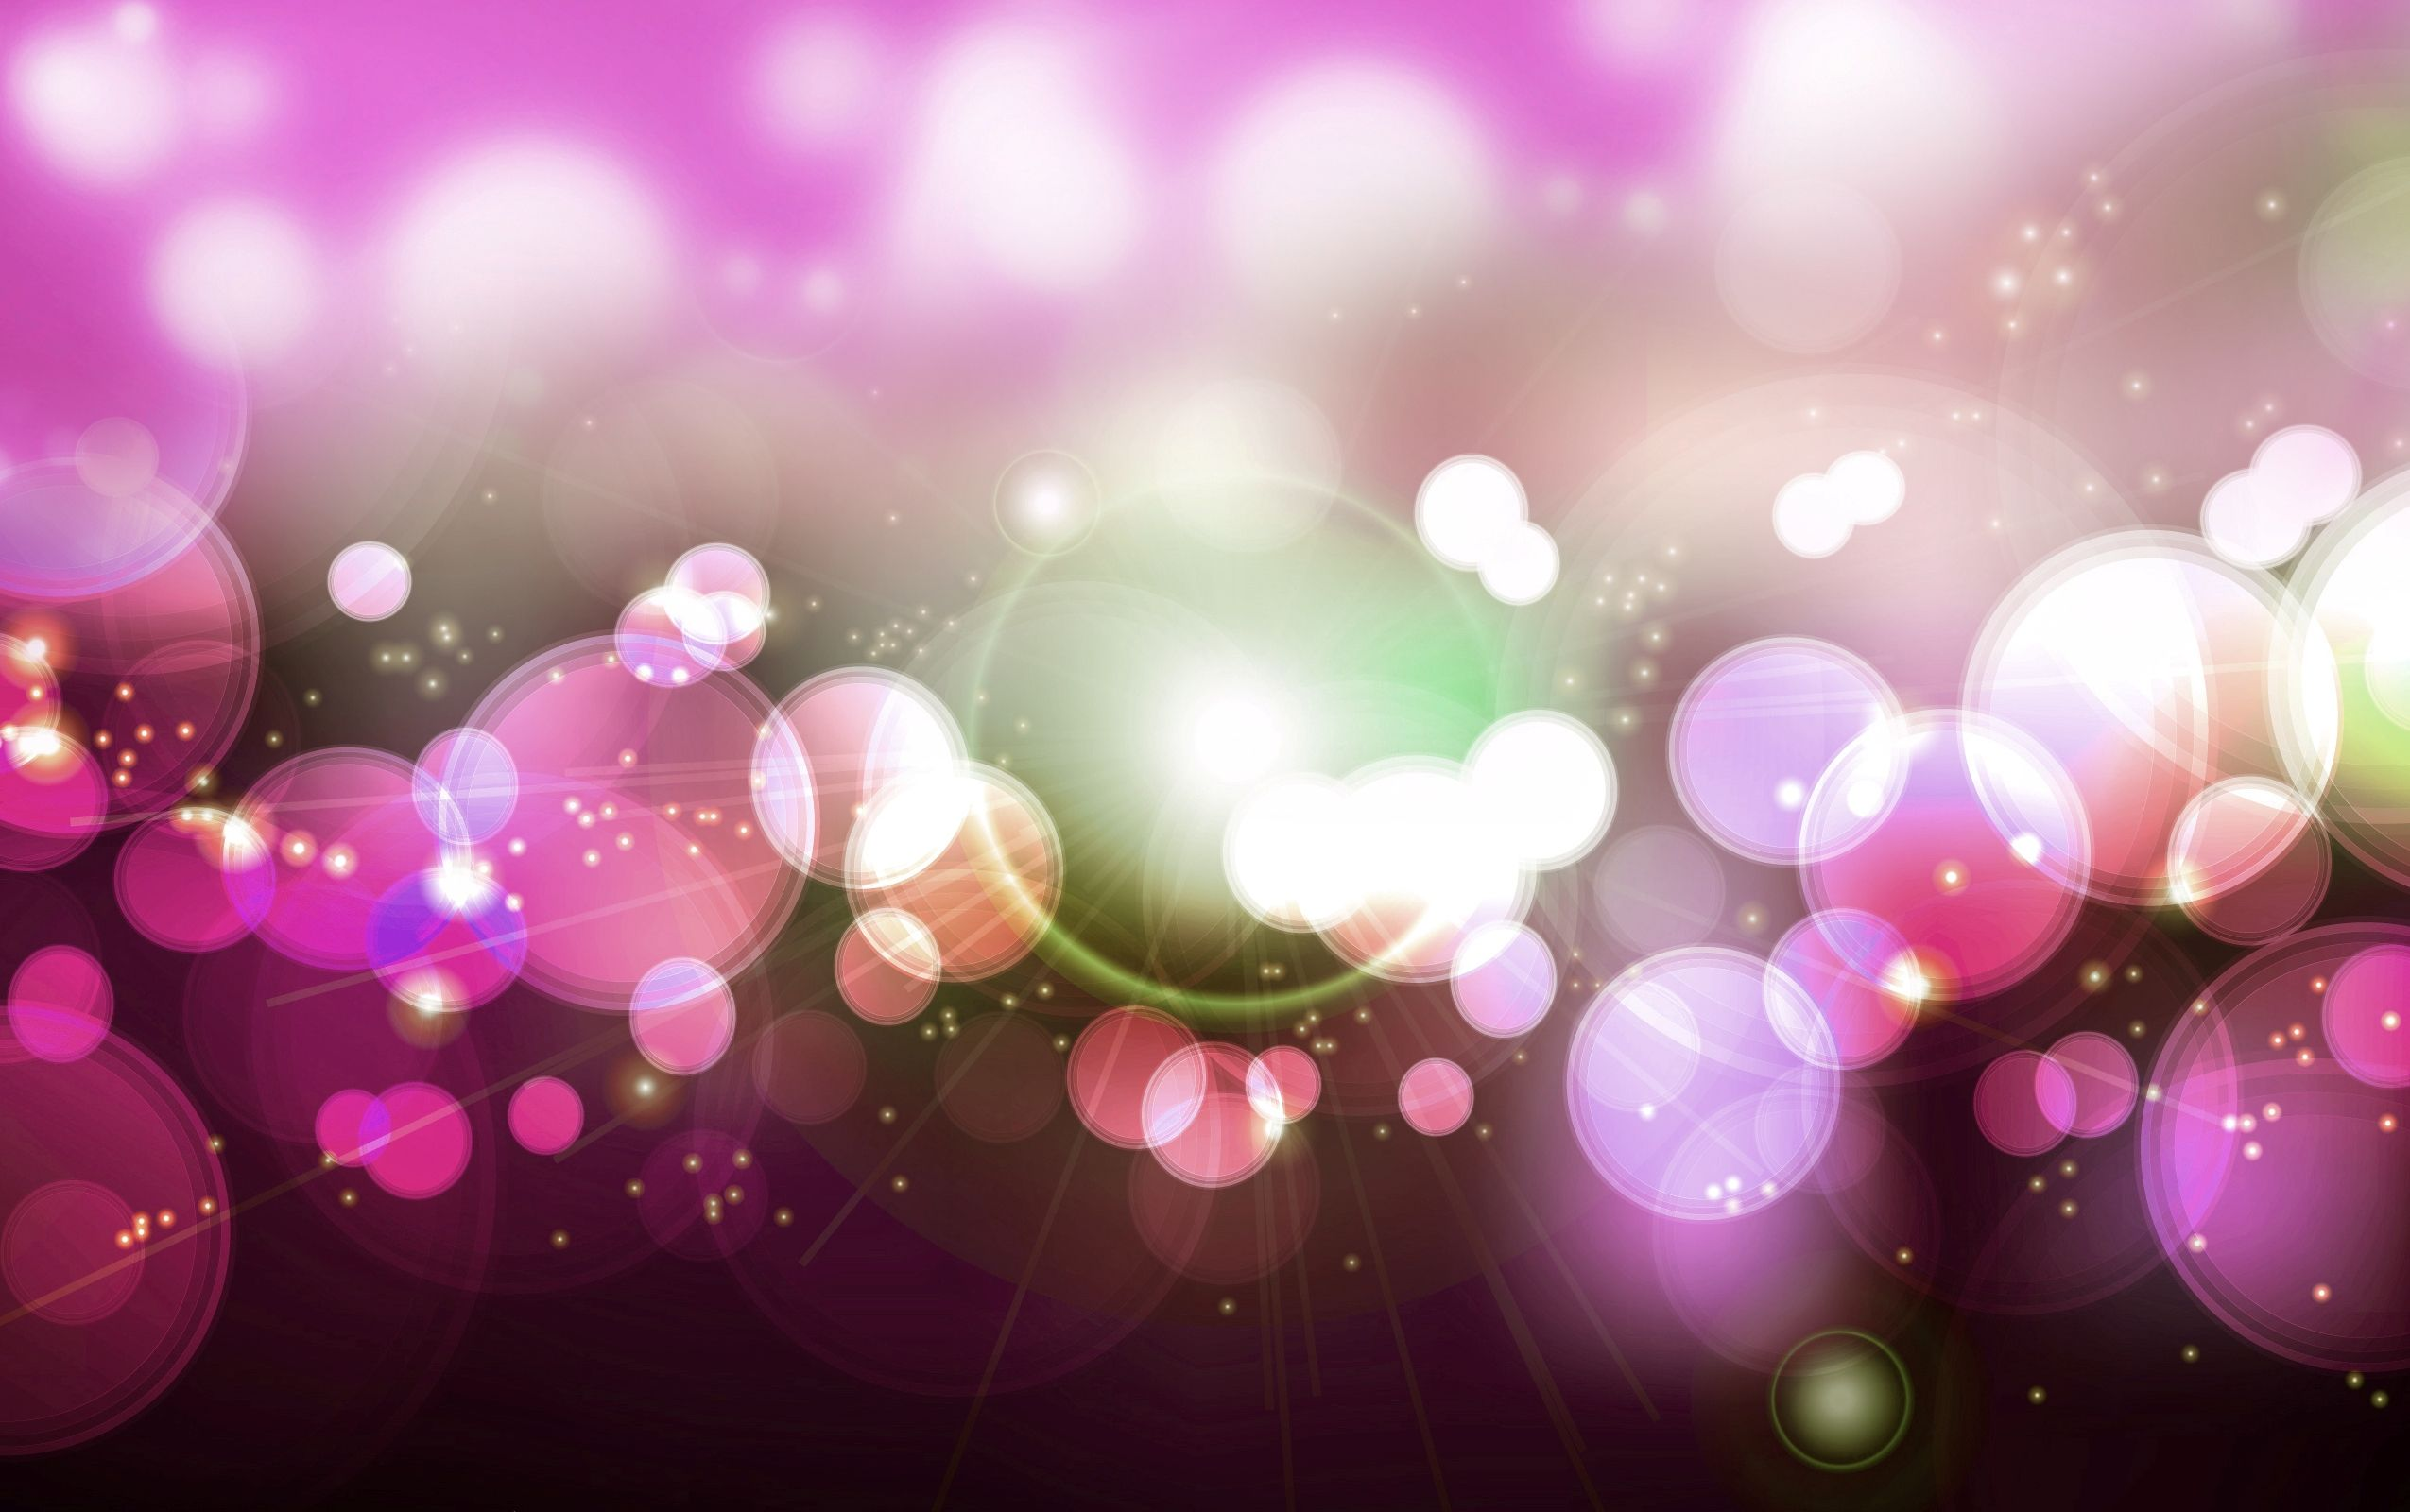 Blurry Abstract Fluid Holographic Background Holographic Background Holographic Wallpapers Flower Desktop Wallpaper